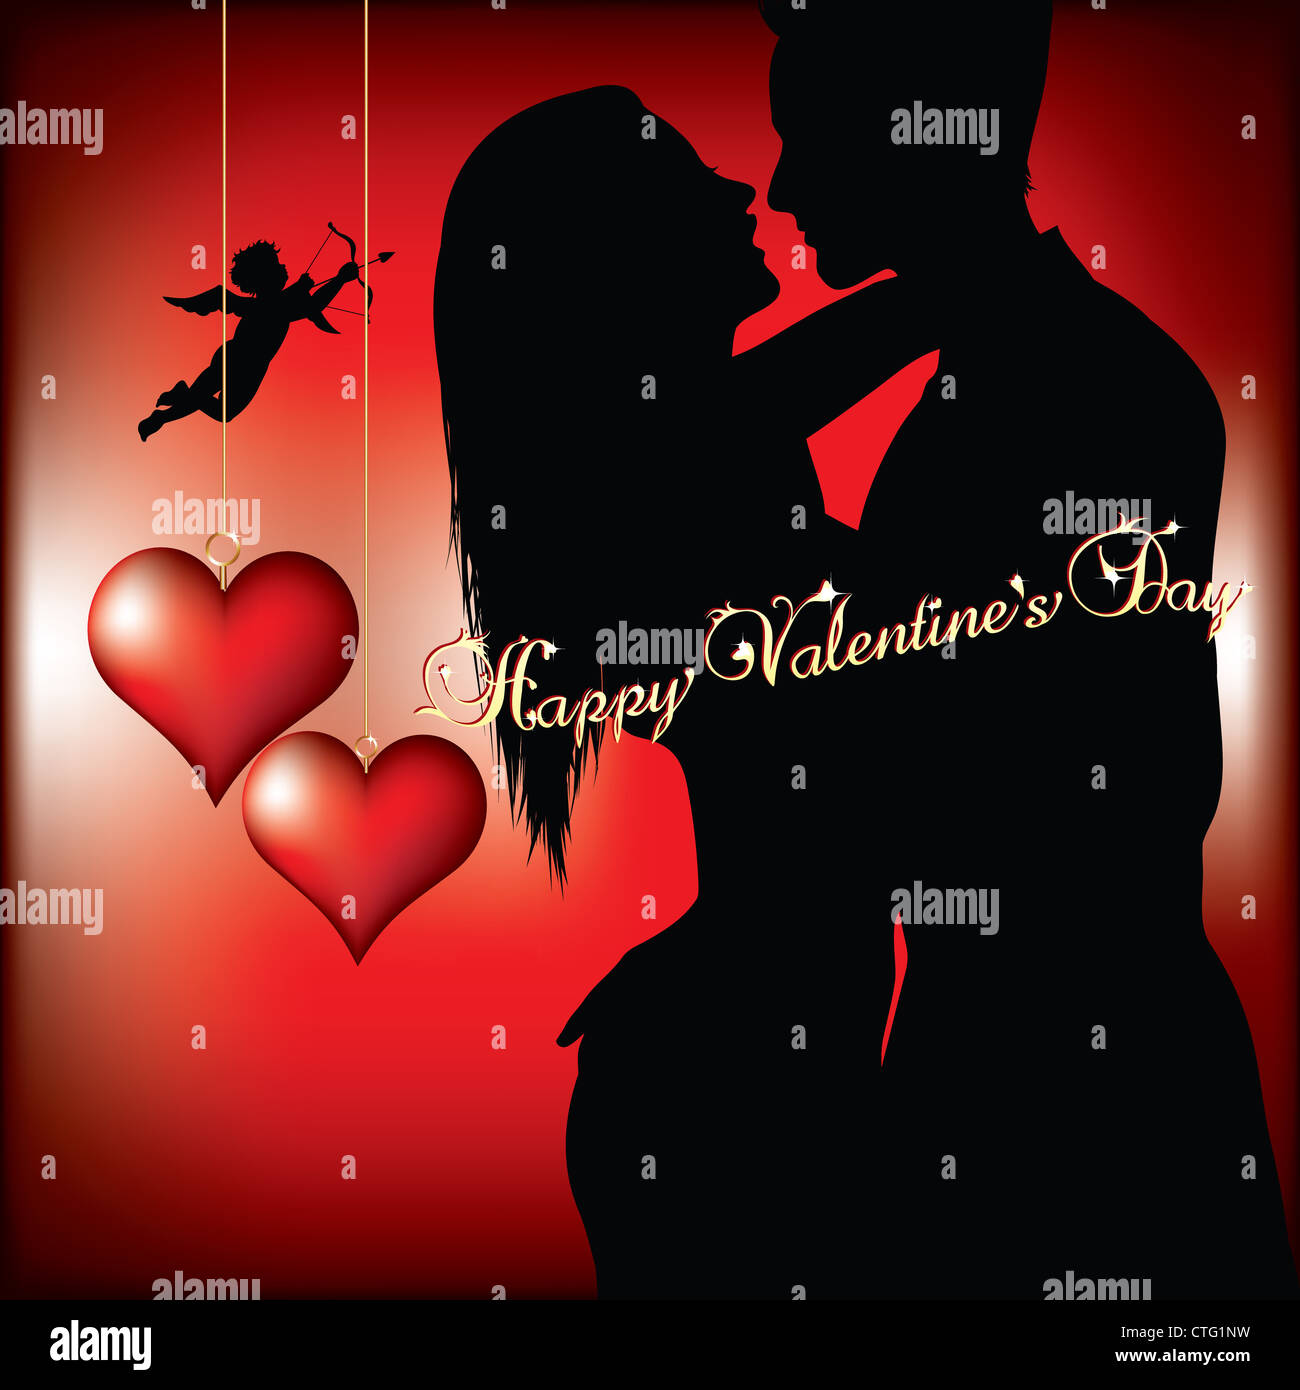 valentines day background with couple silhouette Stock Photo